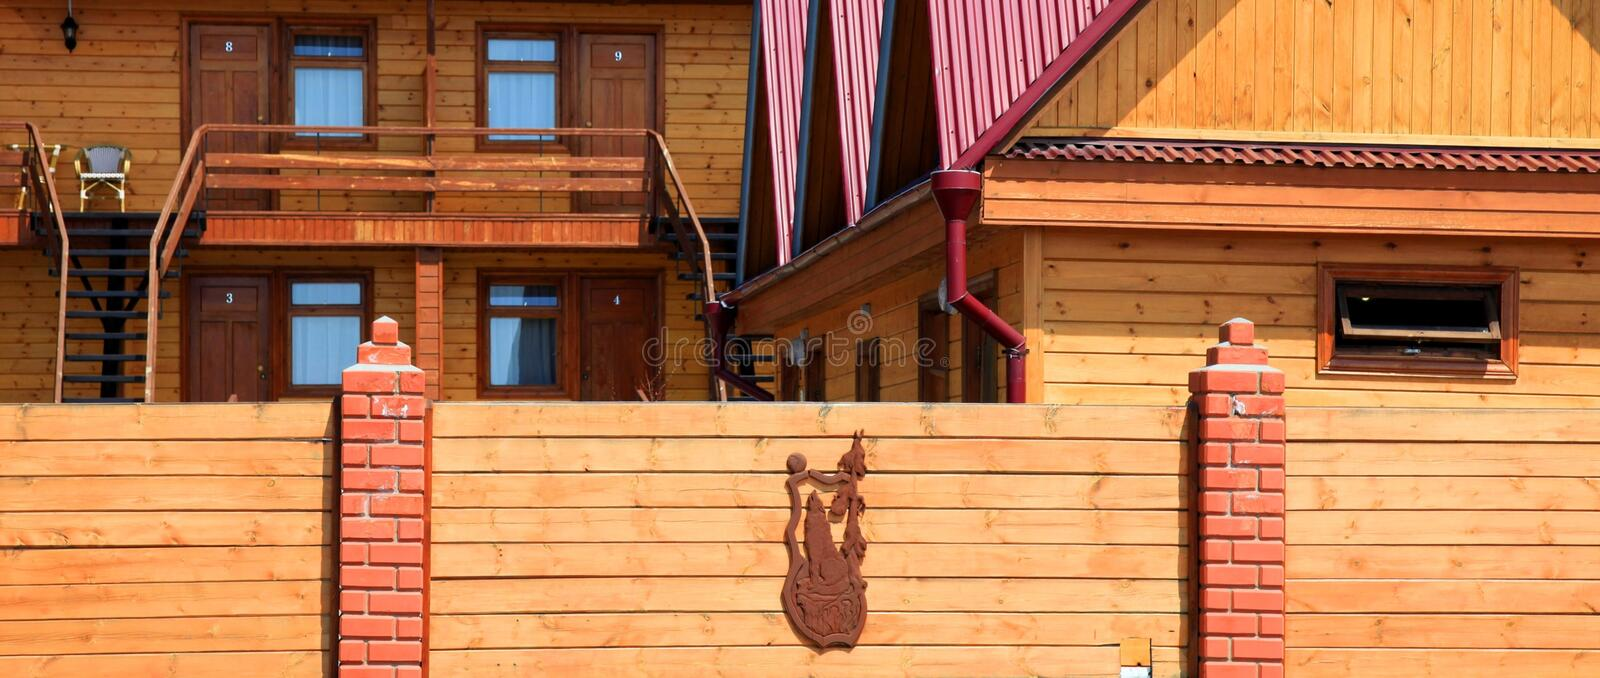 Download Part of a wooden house stock image. Image of architecture - 14386773